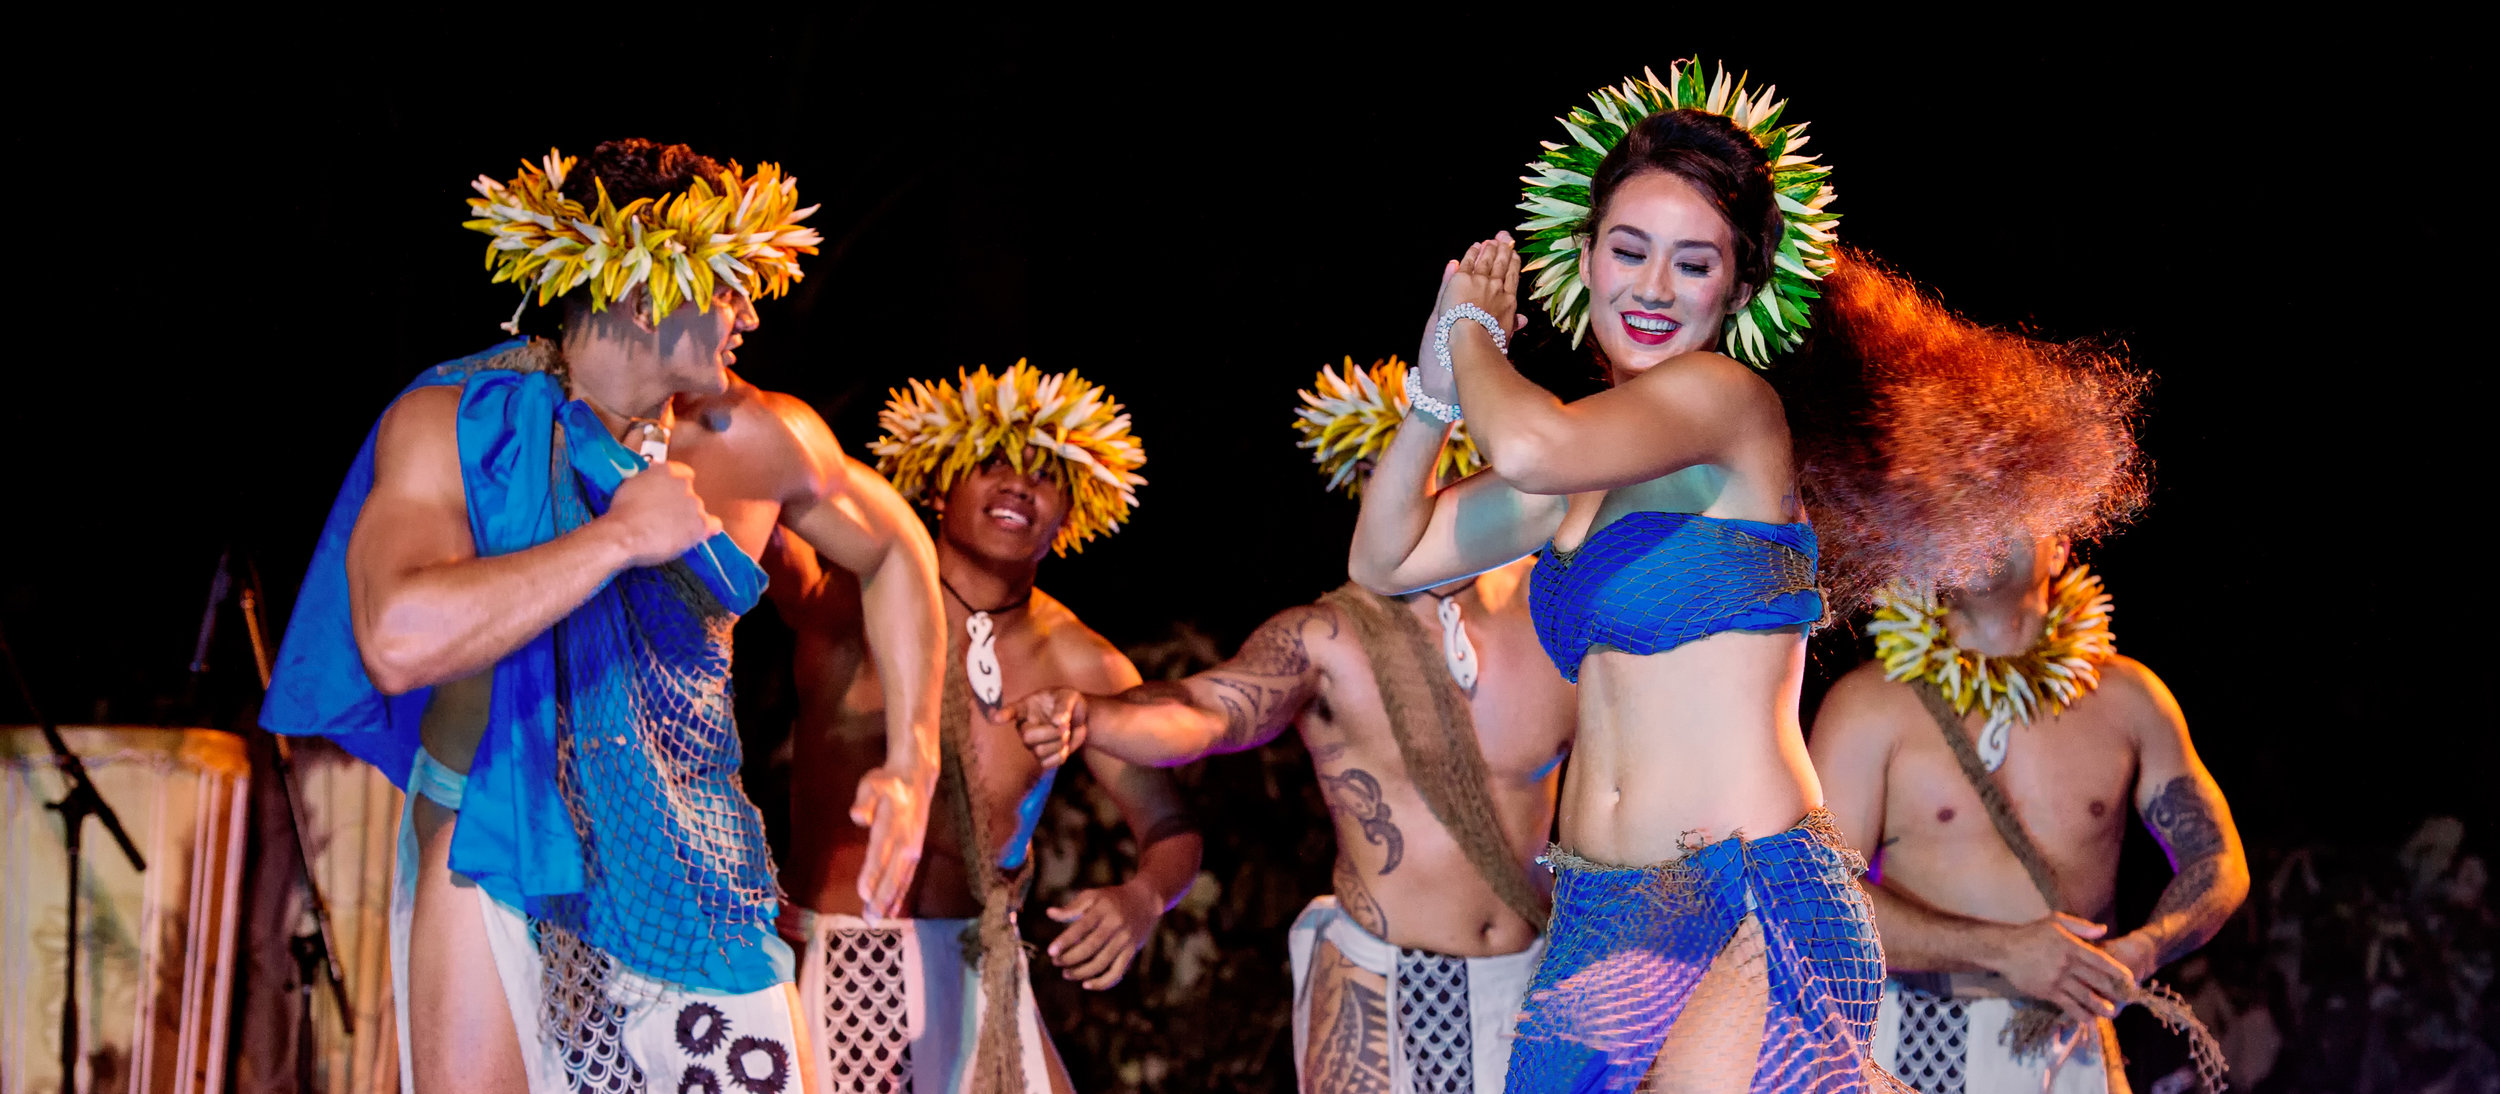 aulani-activities-ka-waa-luau-2-dancers-in-blue.jpg